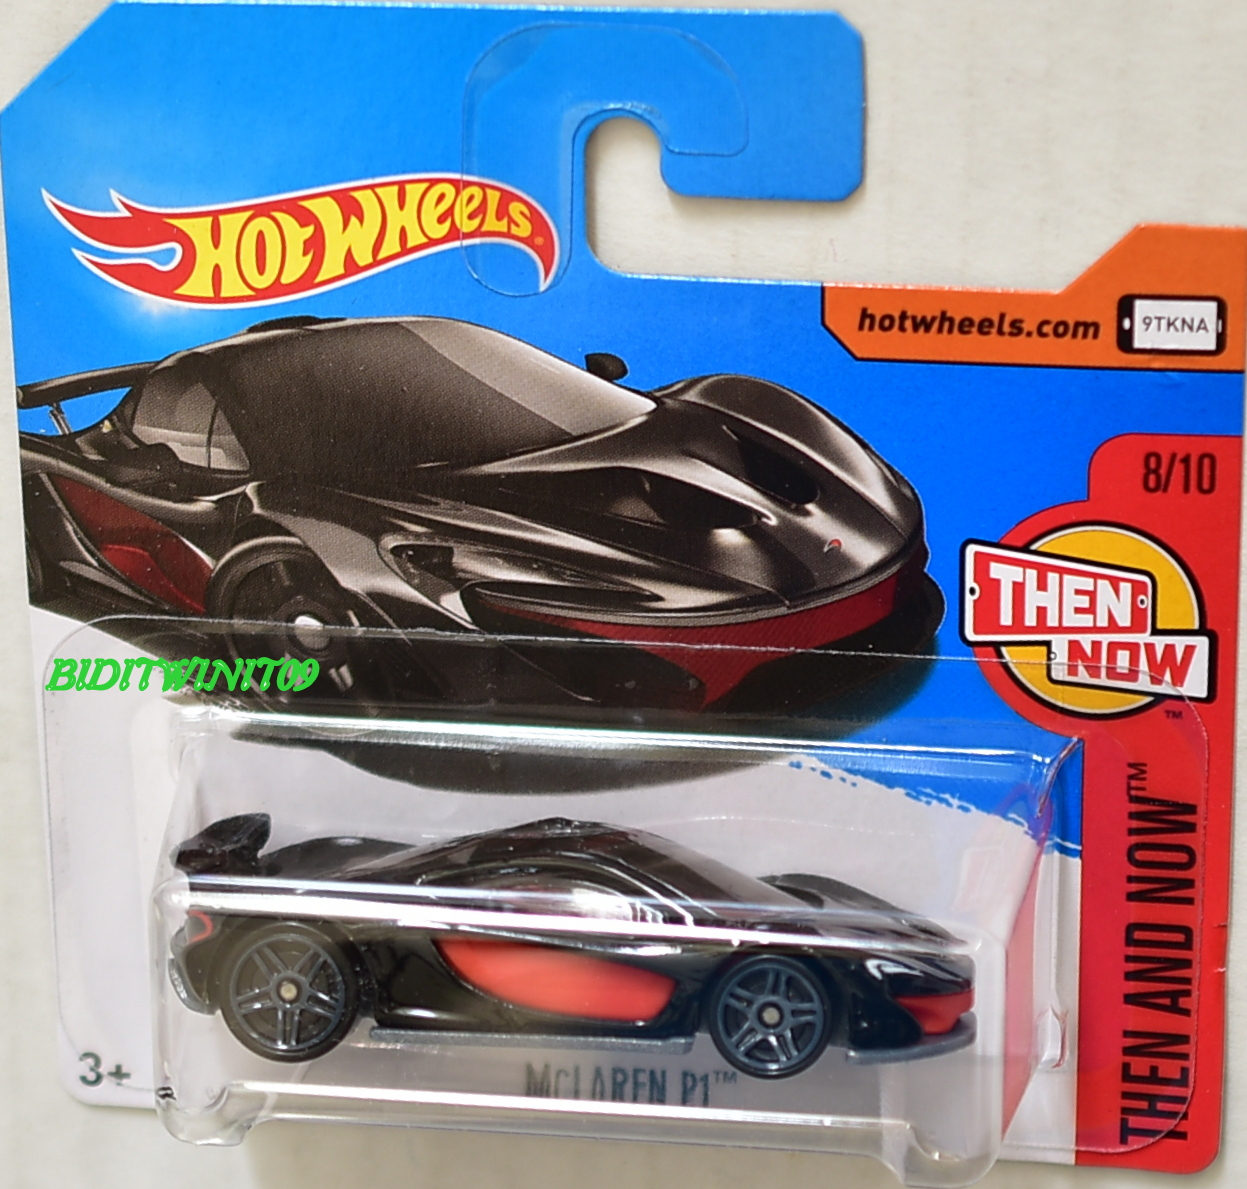 HOT WHEELS 2017 THEM AND NOW MCLAREN P1 SHORT CARD